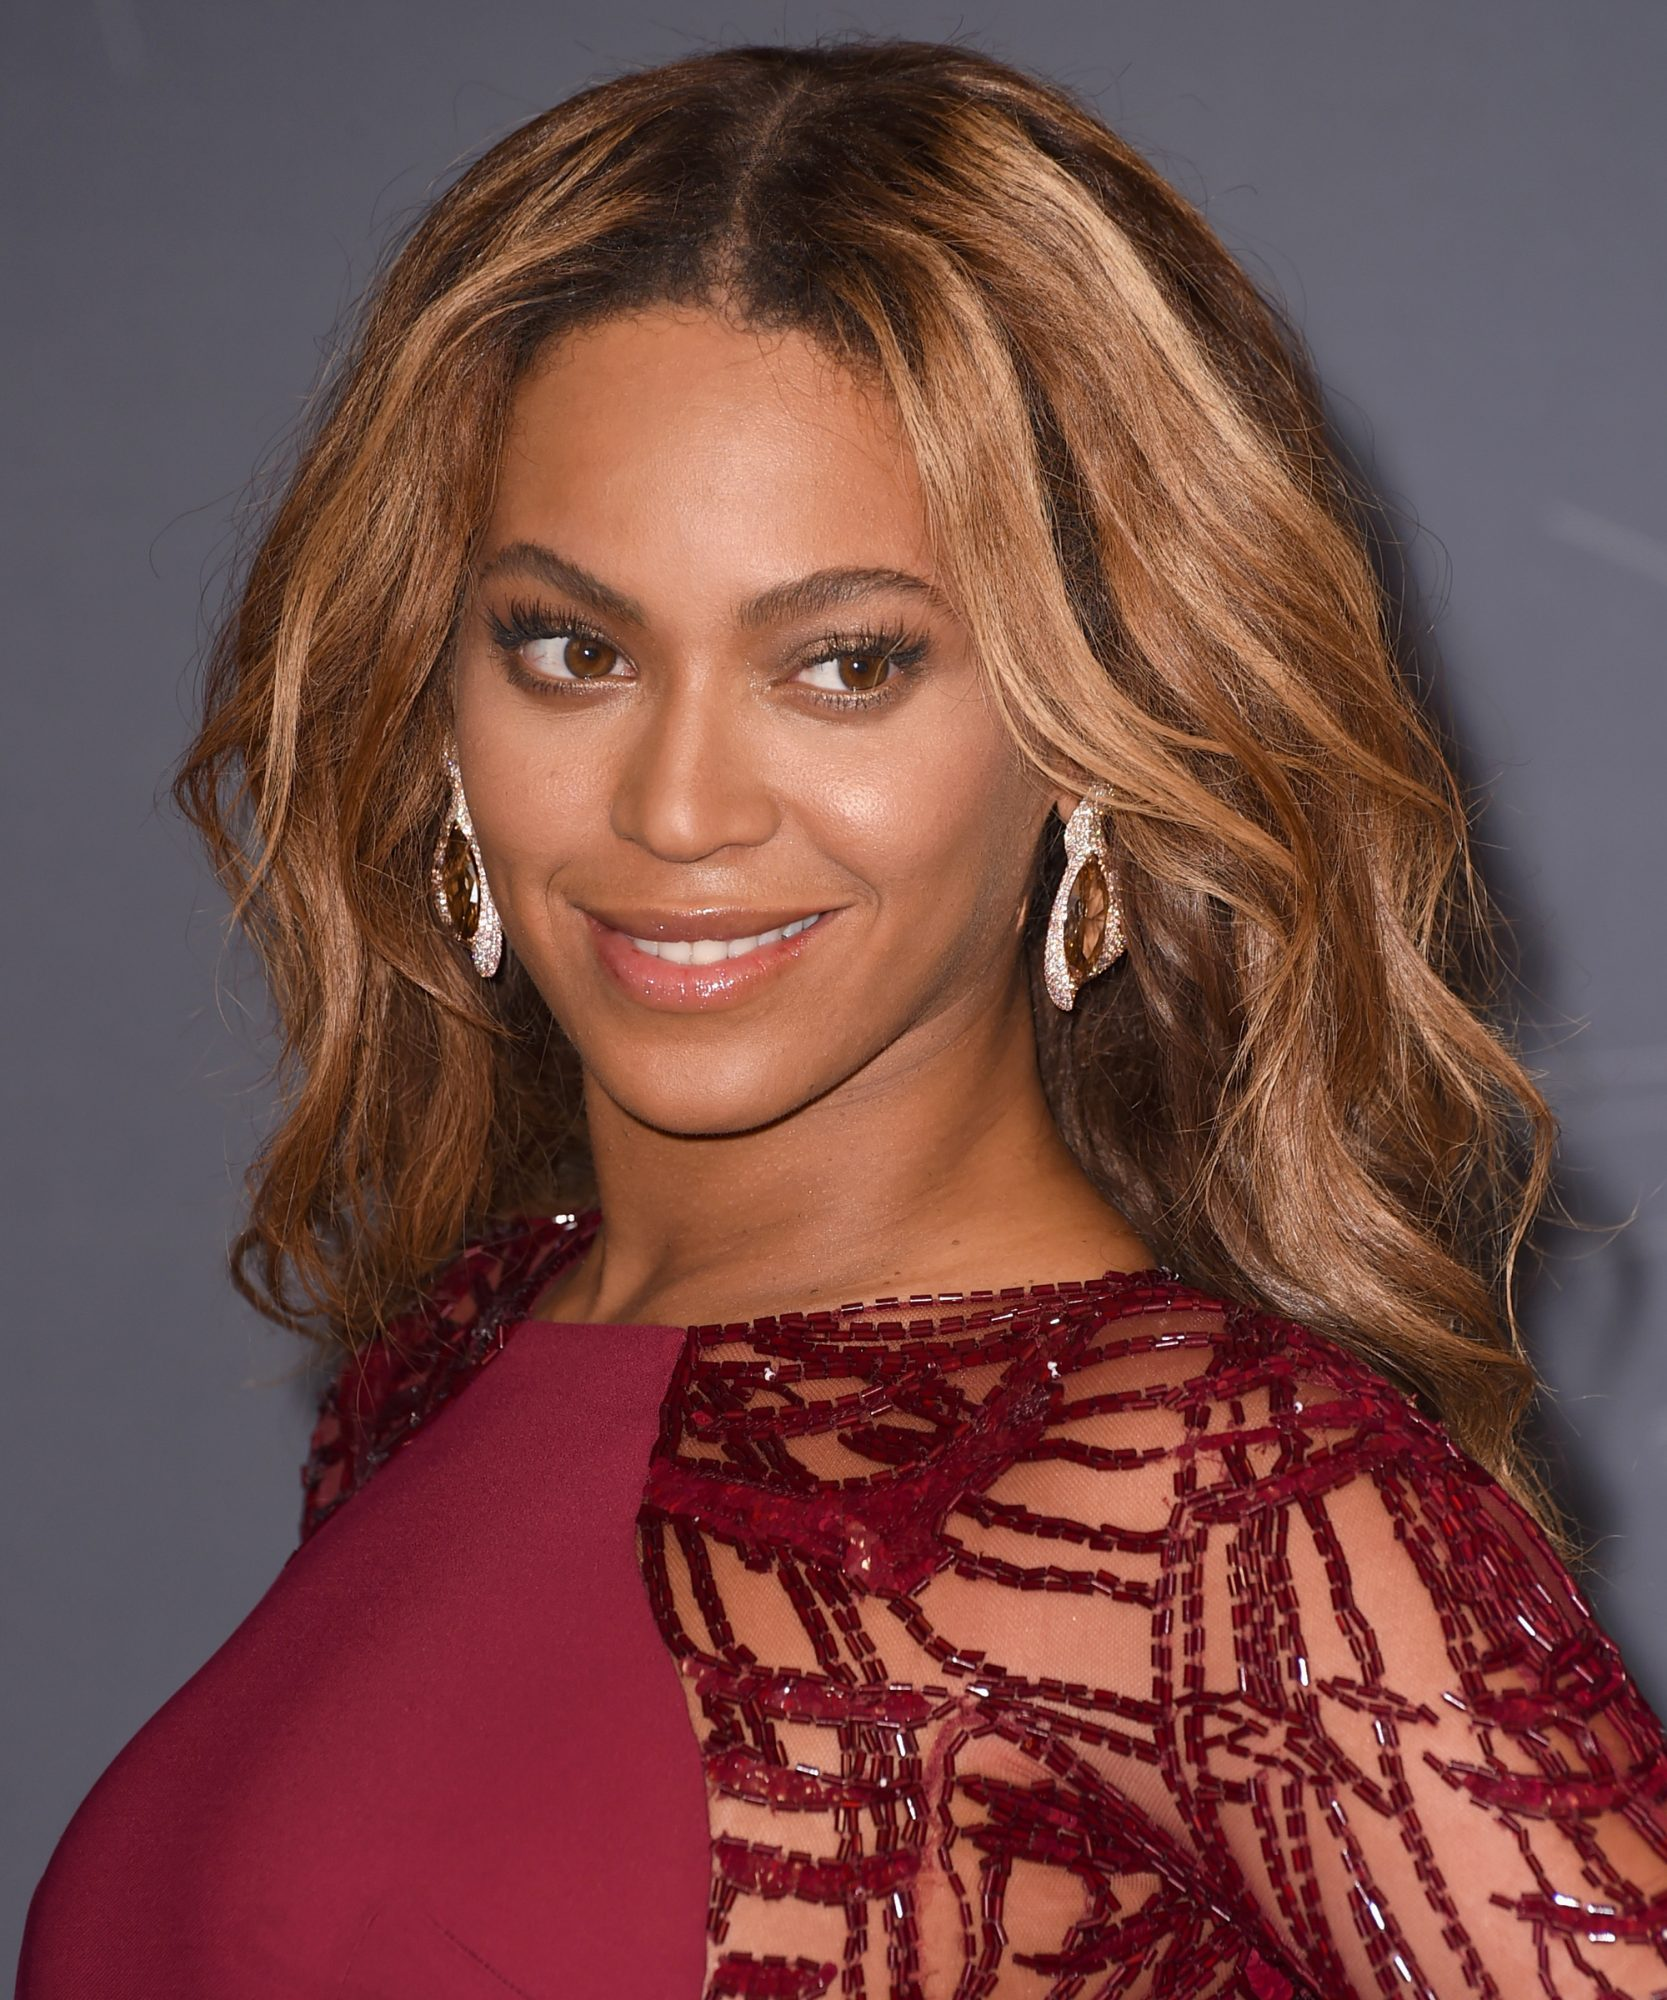 beyonce hair style beyonce s best hair moments instyle 4668